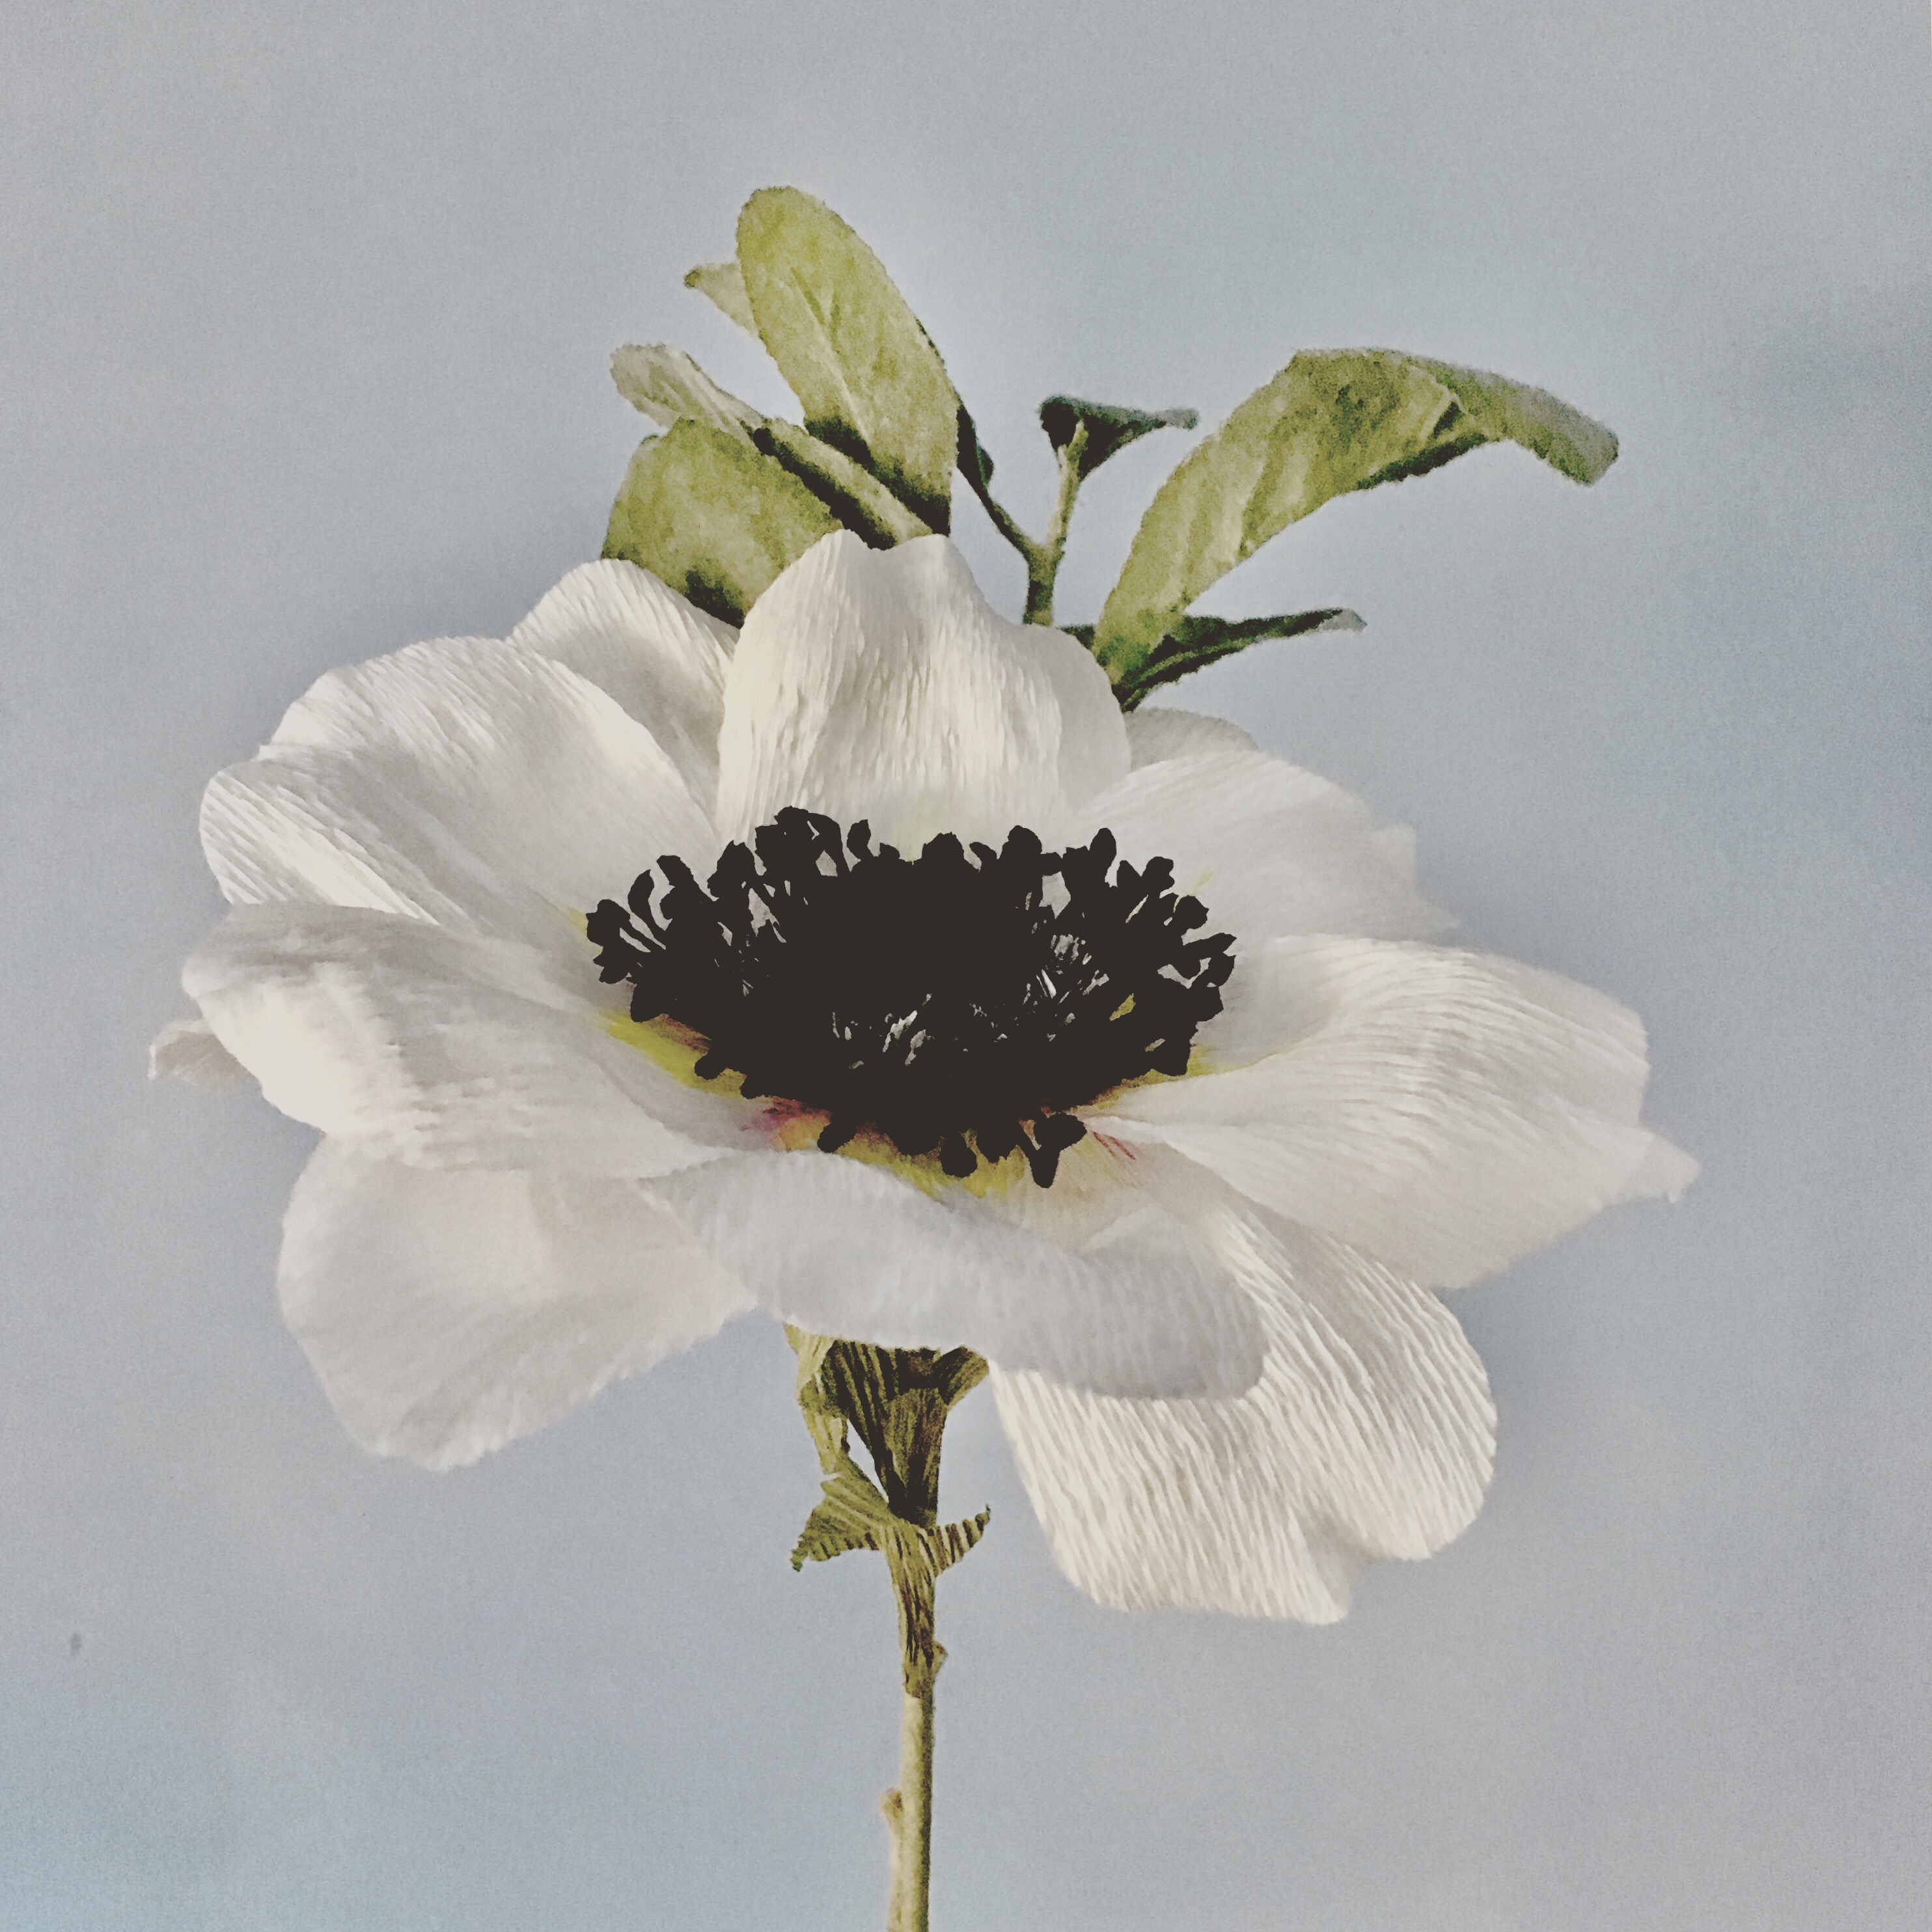 ready white crepe paper anemone on grey background